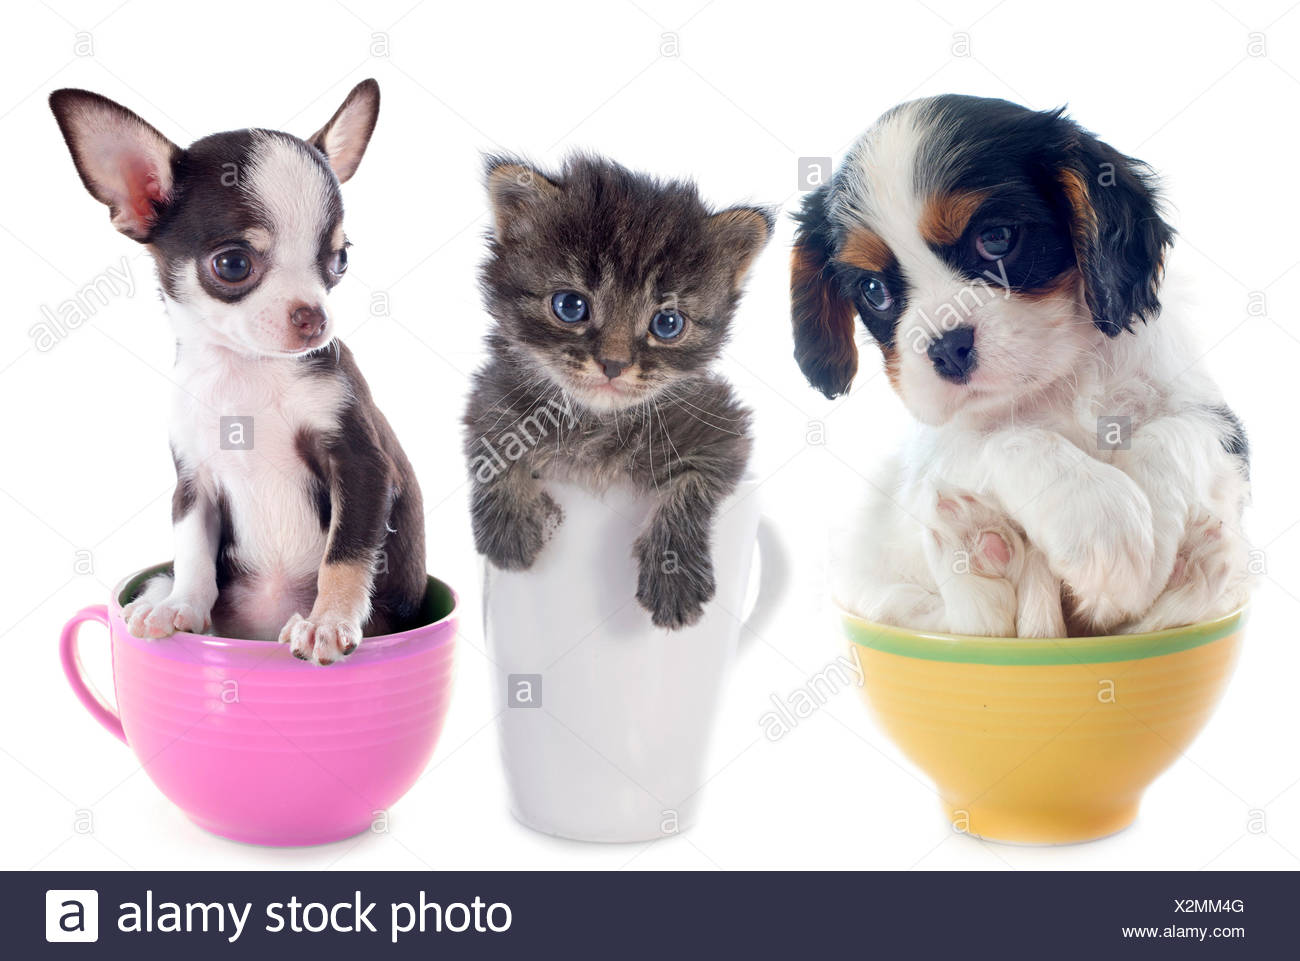 images of teacup dogs.html